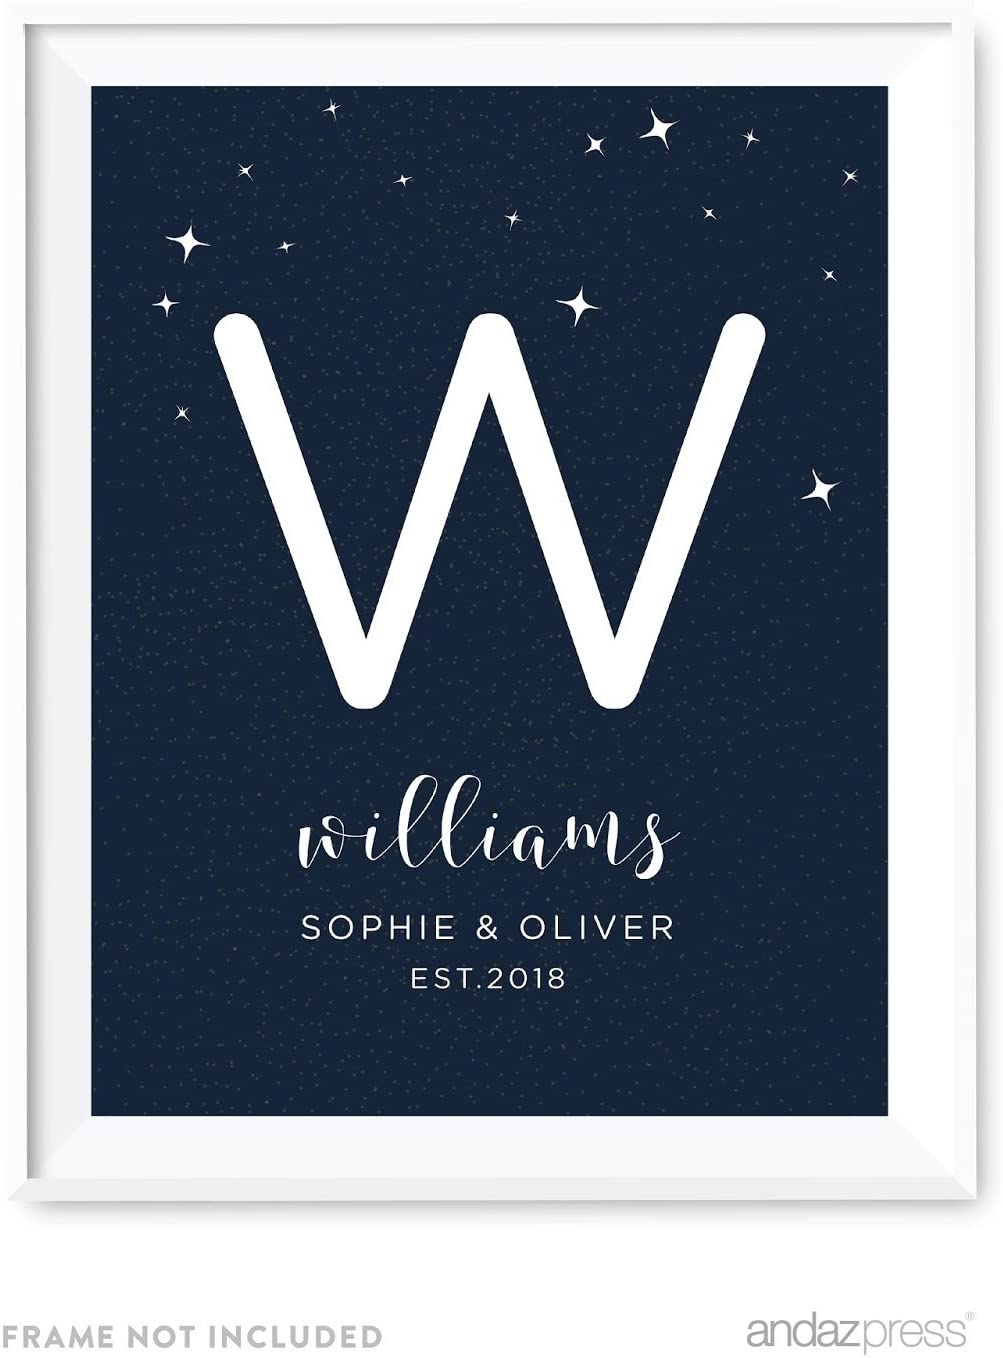 Andaz Press Love You to The Moon and Back Wedding Collection Personalized, Party Signs, Monogram Bride & Groom Names, Est. Year, 8.5x11-inch, 1-Pack, Custom Name